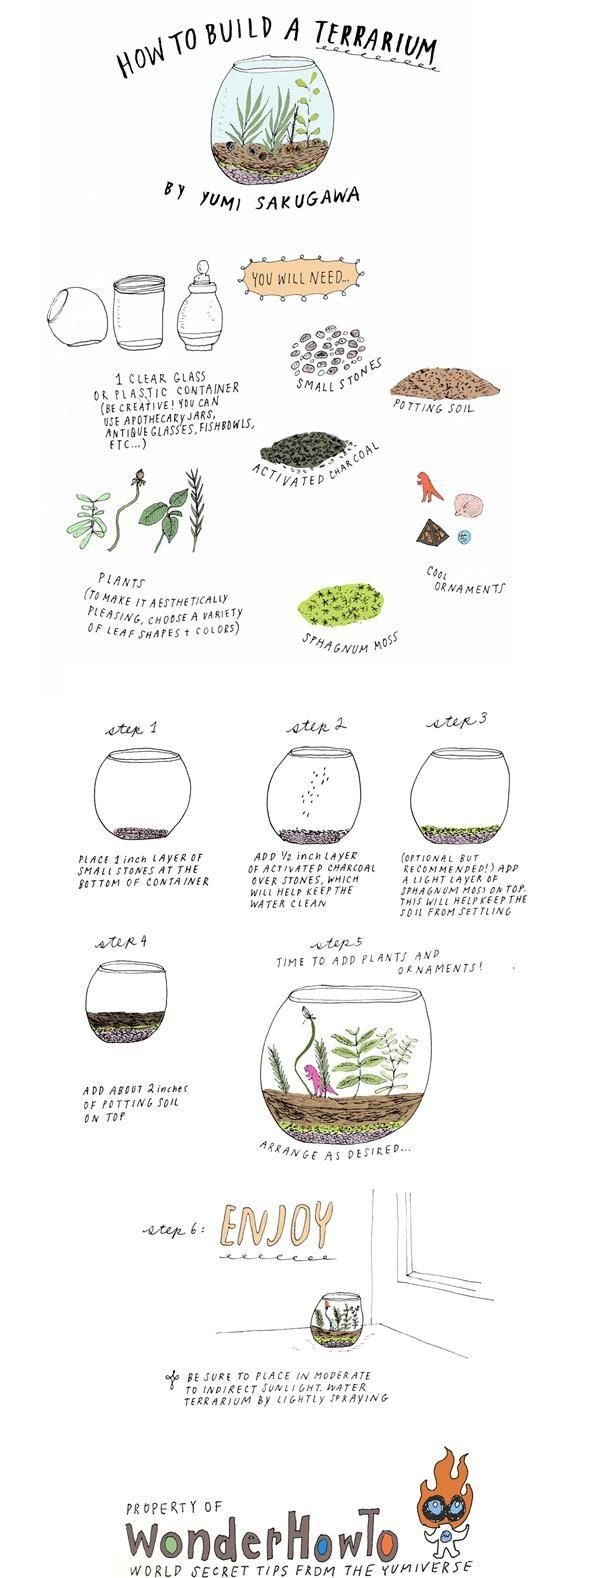 How to Build Your Own Terrarium | Pinterest | Terraria, Note and Gardens